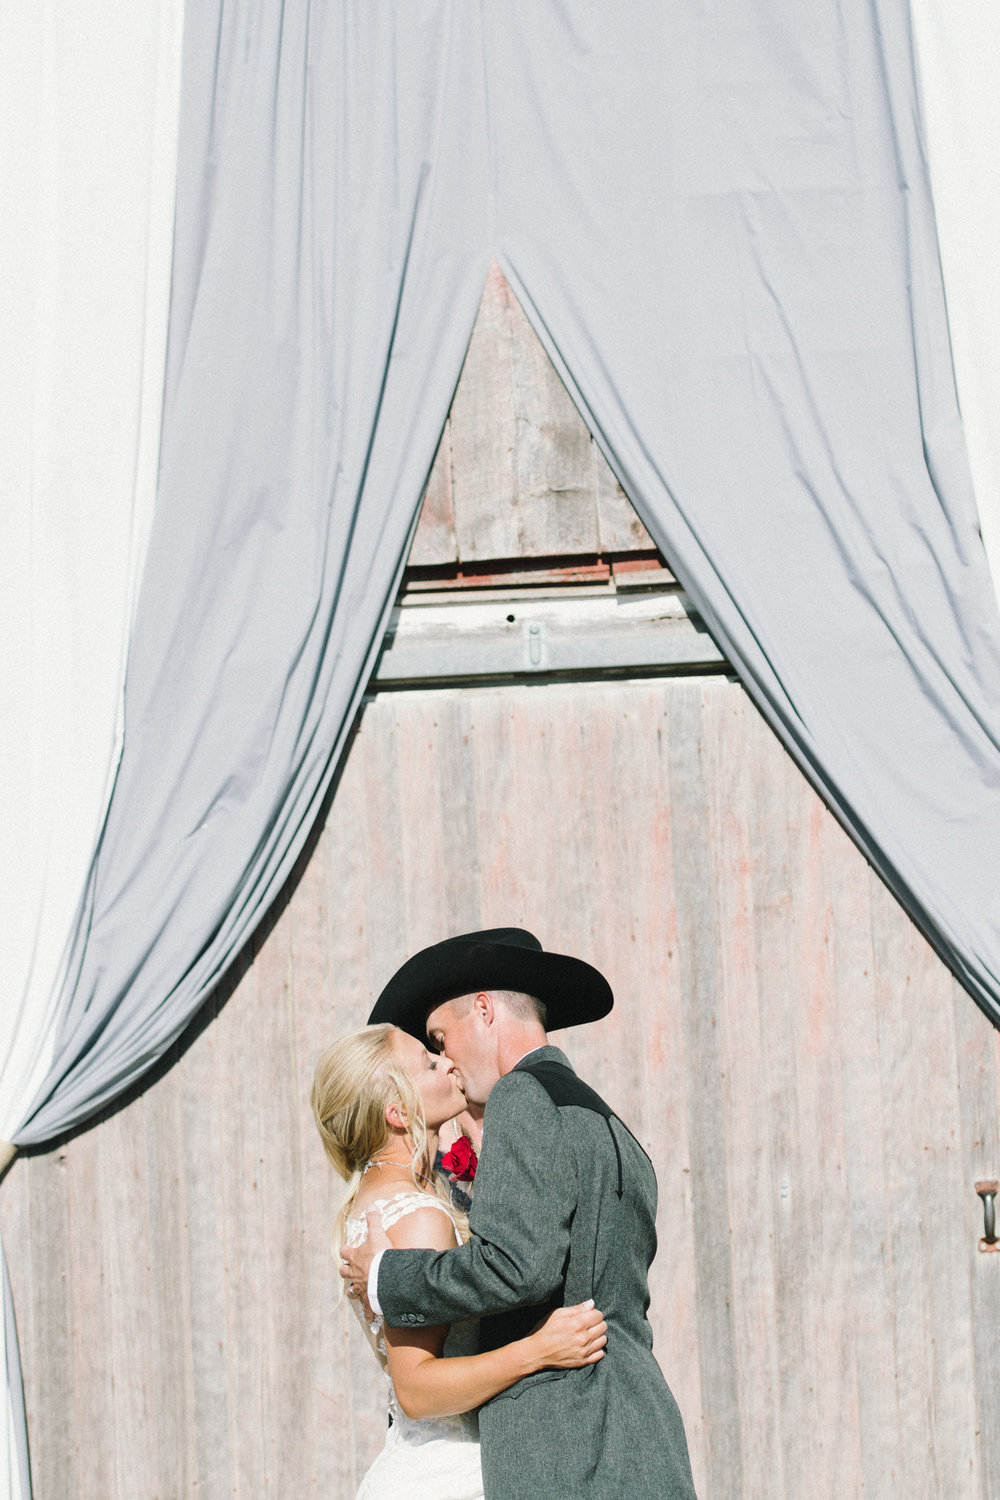 Erica Lind + Jeff Heim Wedding_Rustic Wedding_Montana Wedding_Kelsey Lane Photography-4527-3.jpg